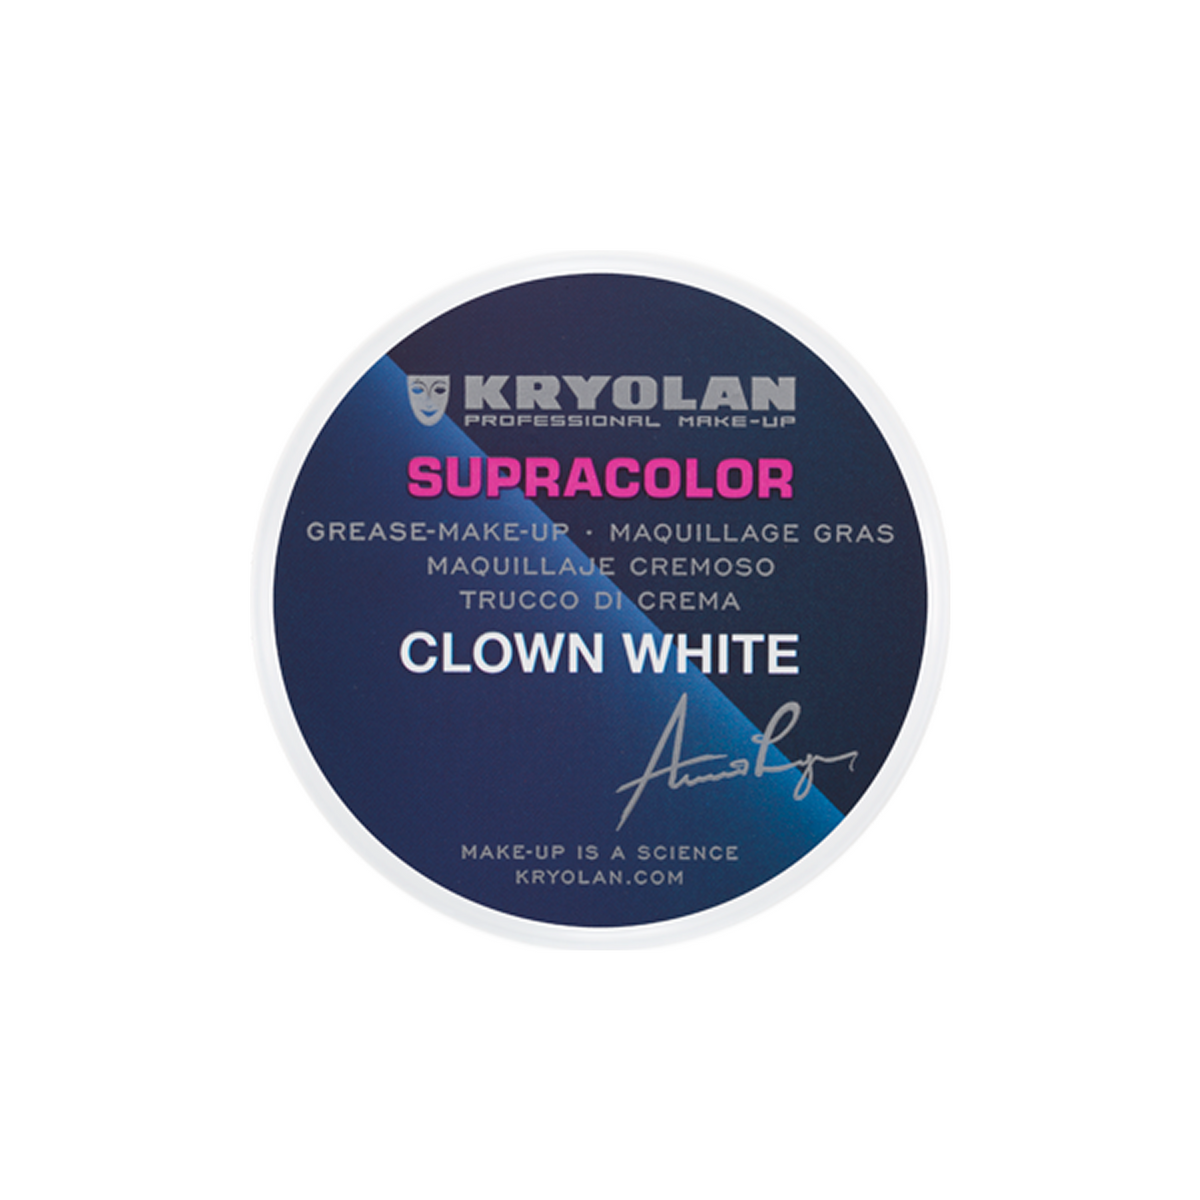 Kryolan Supracolor Clown White - Red Carpet FX - Professional Makeup